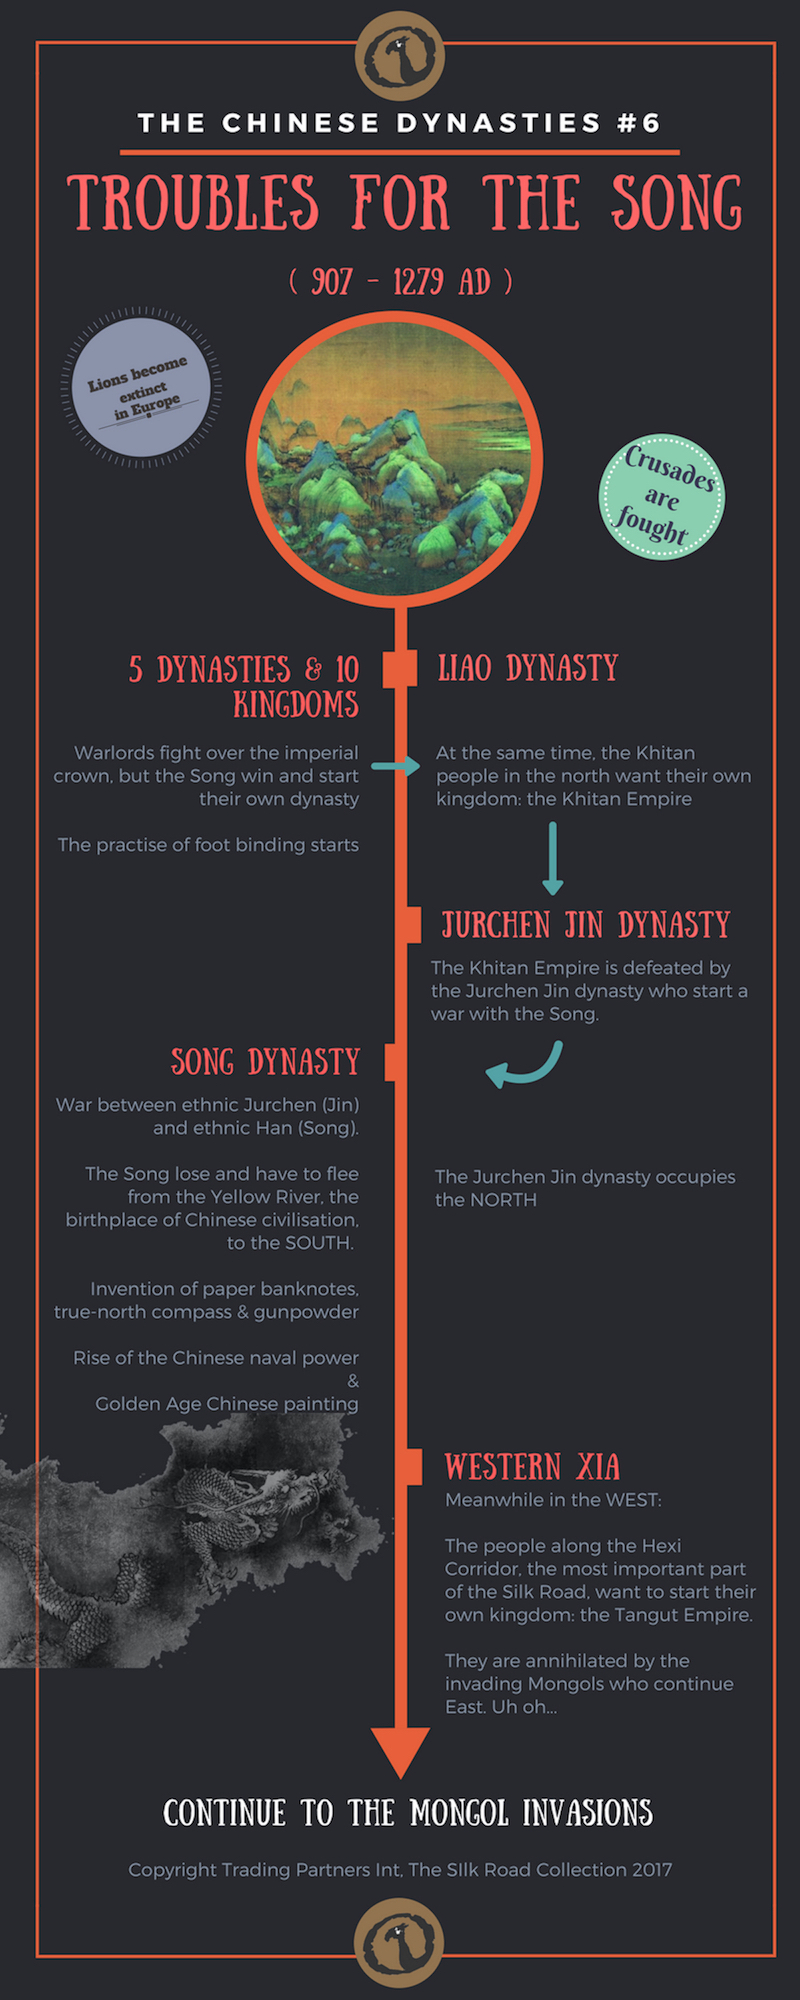 Timeline image of The Chinese Dynasties: Troubles for the Song